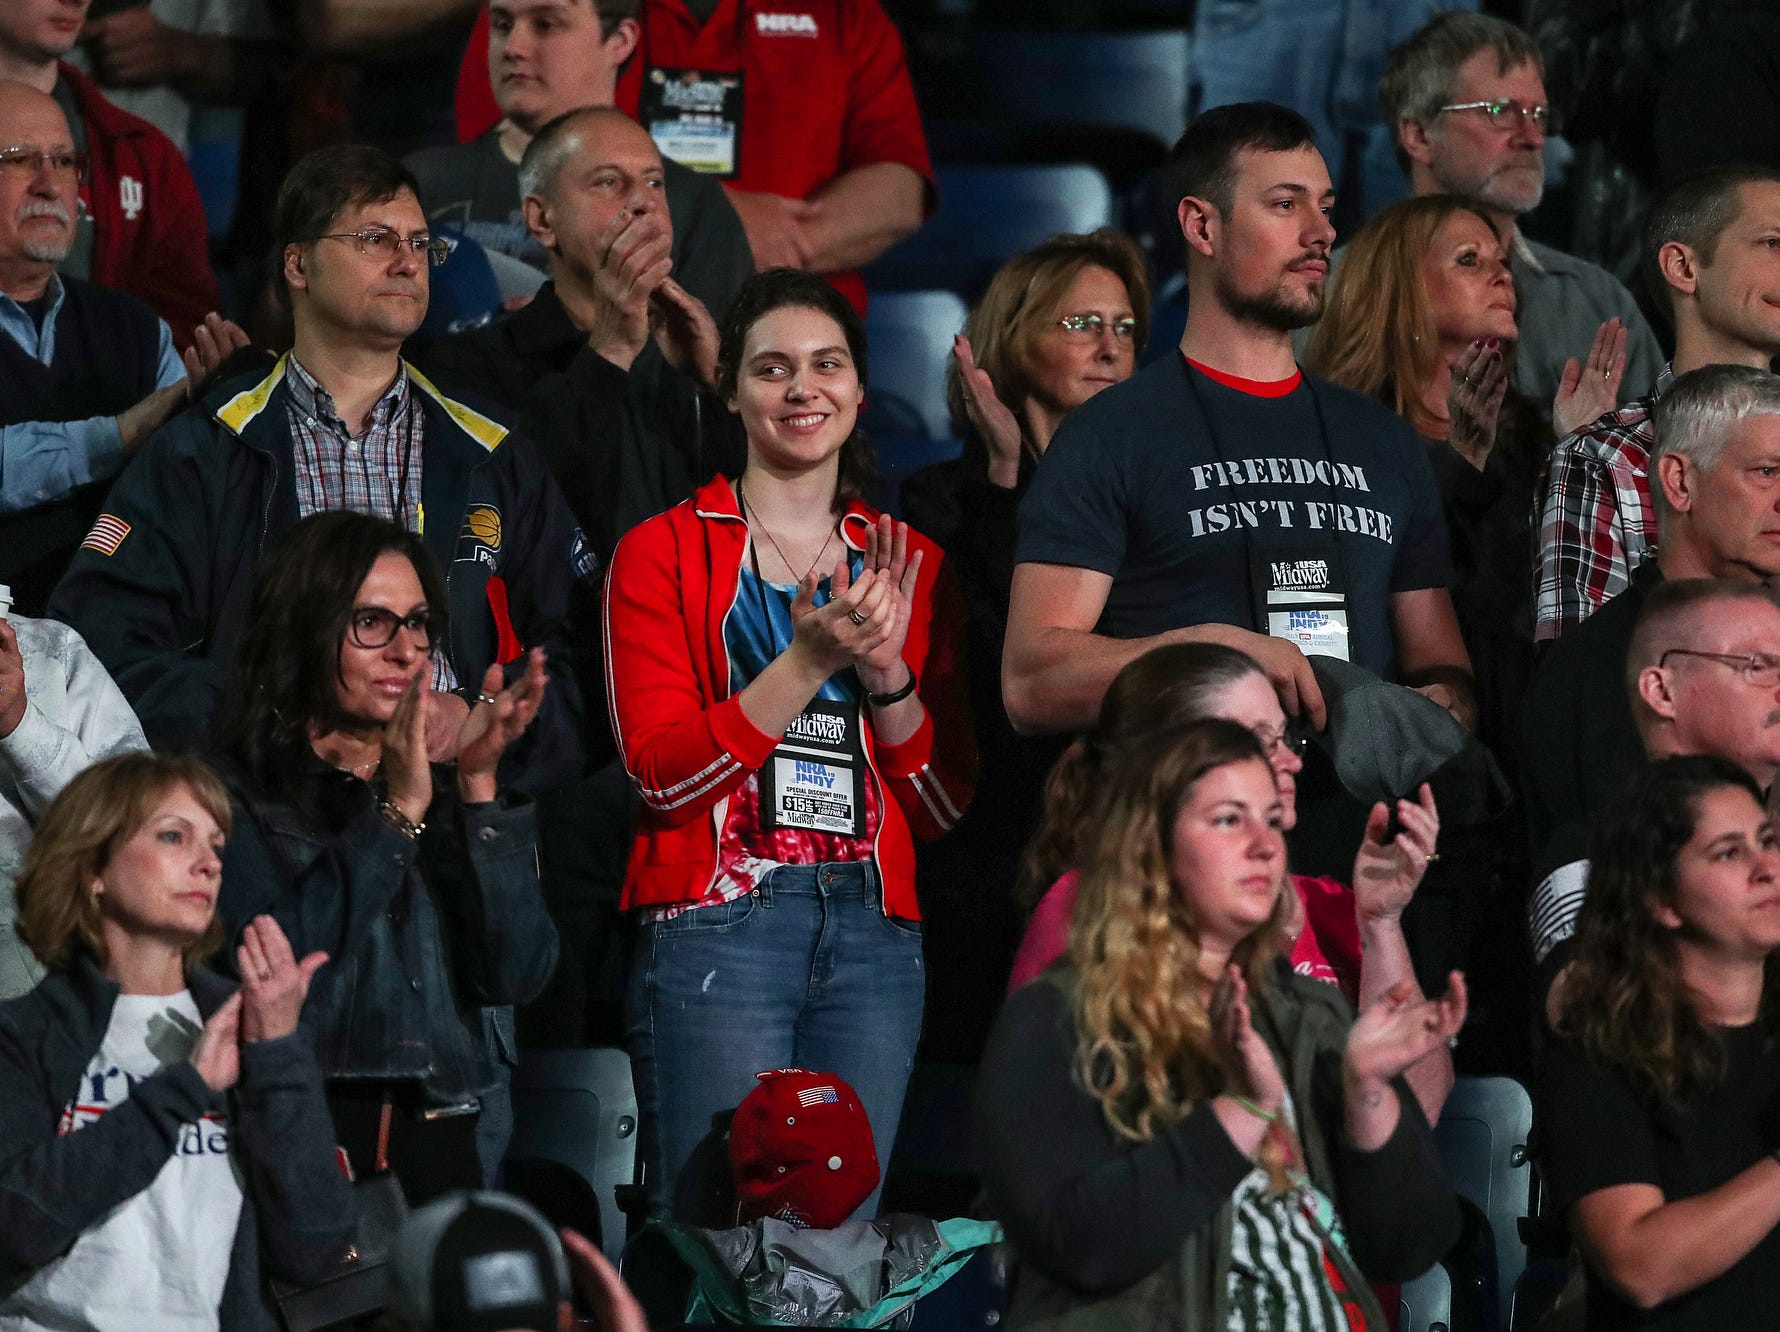 Spectators cheer as the National Rifle Association Institute for Legislative Action Leadership Forum begins, Friday, April 26, 2019, at Lucas Oil Stadium in Indianapolis.